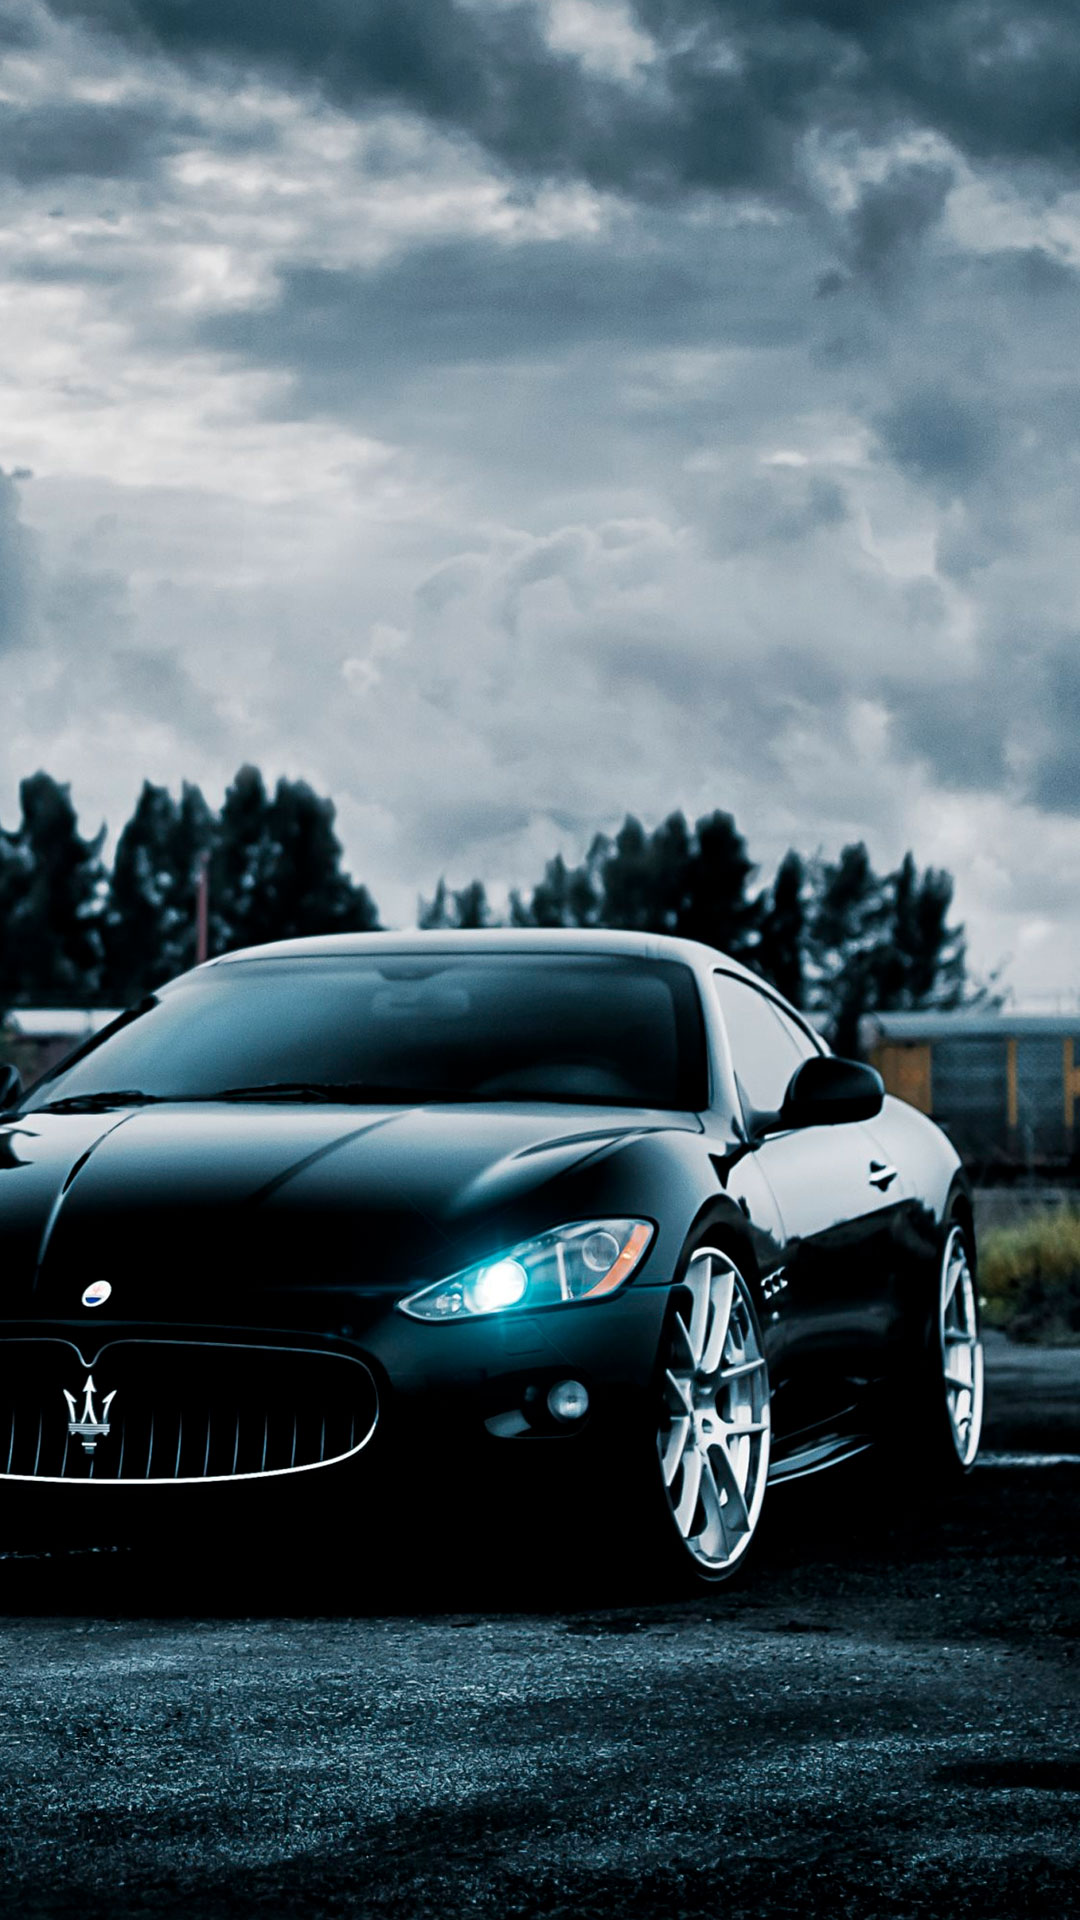 iPhone wallpaper maserati black Maserati